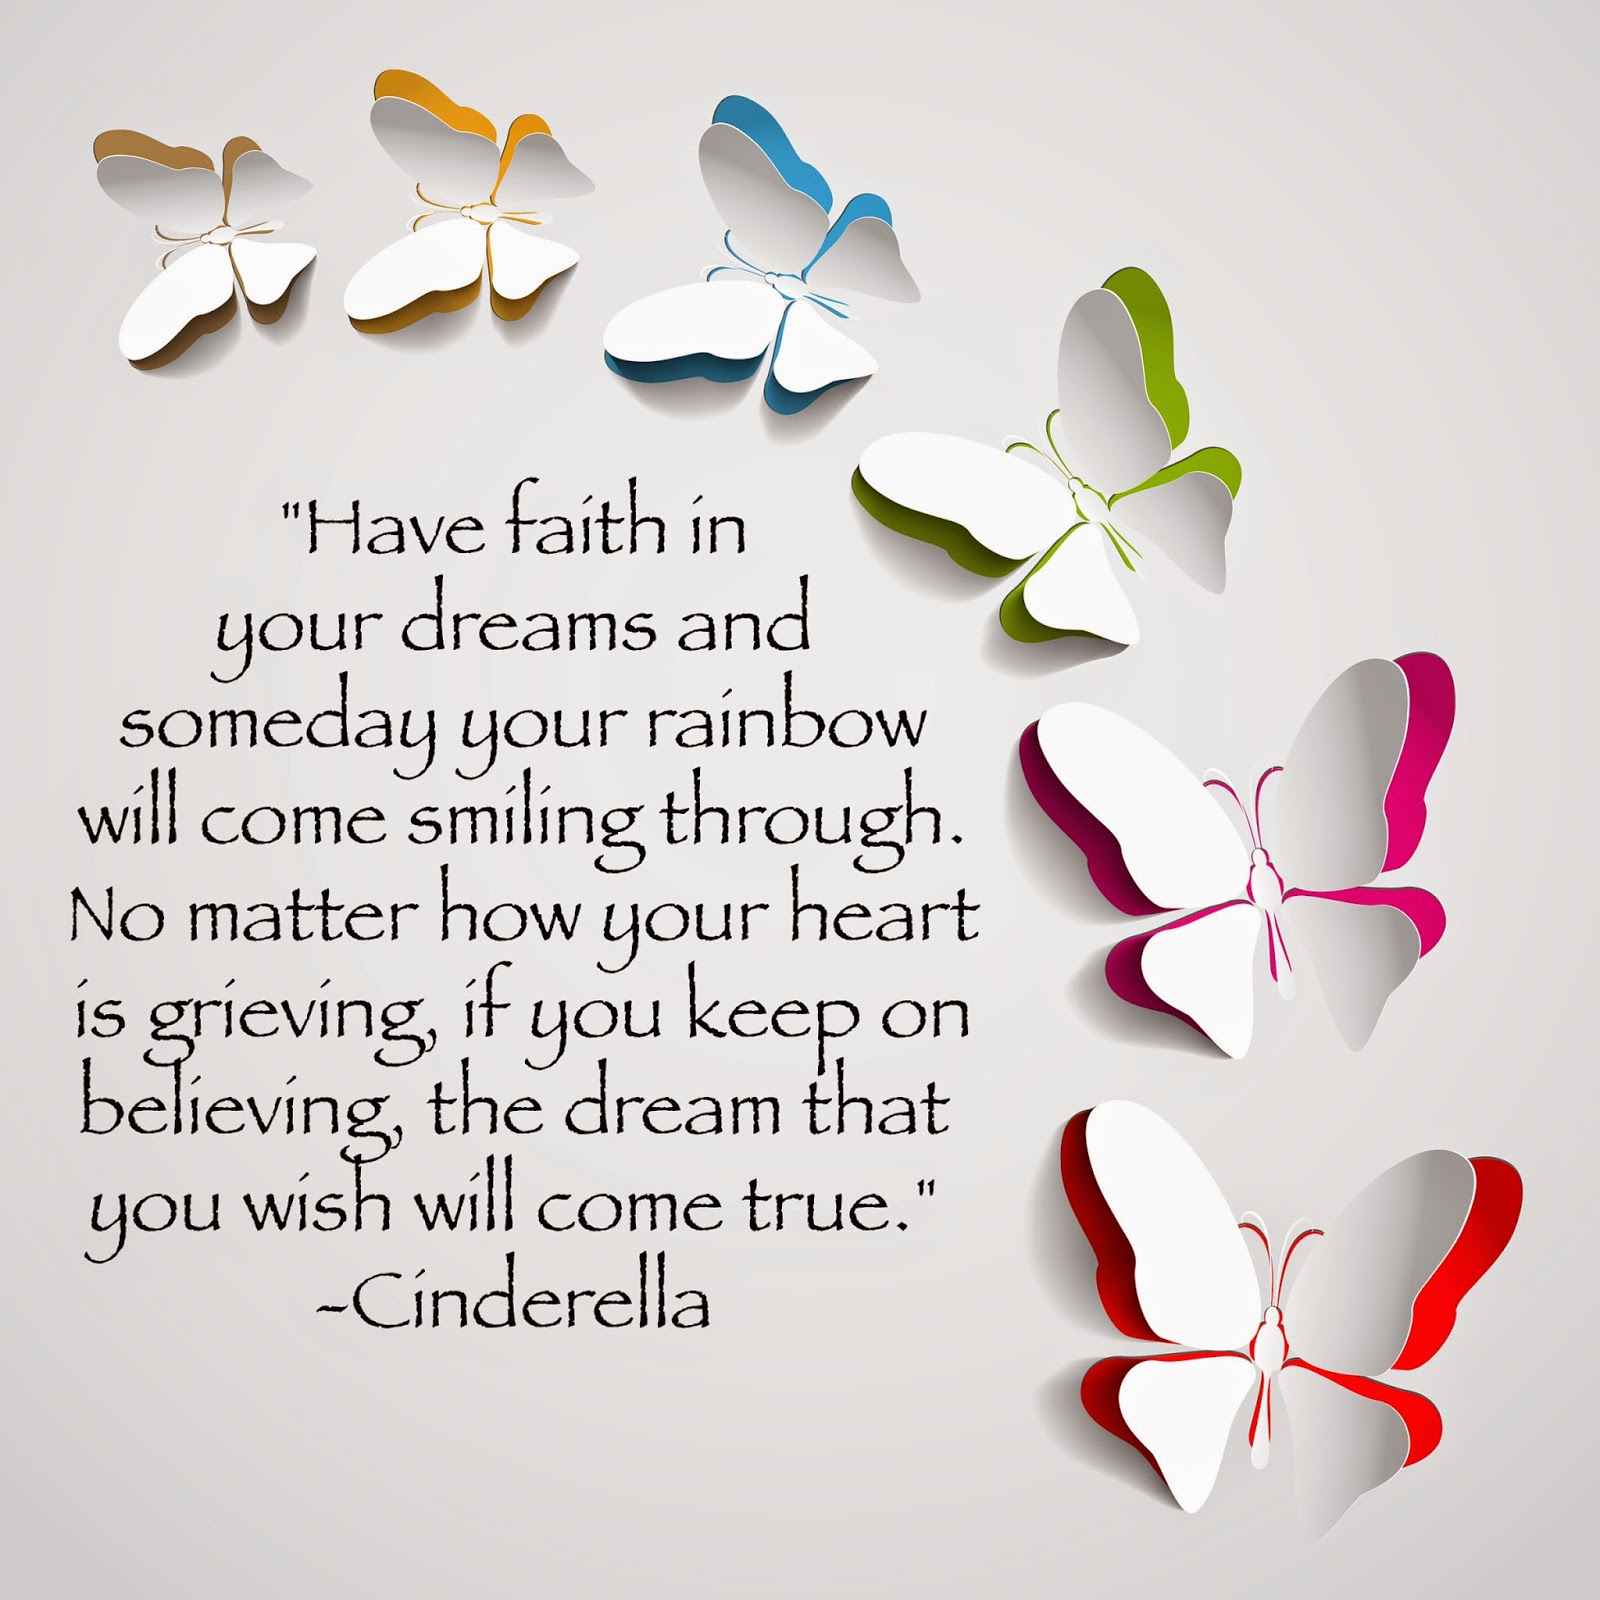 And It Has Come True For Myself All My Friends Who Have Experienced A Stillbirth We Now Been Blessed With Our Rainbows